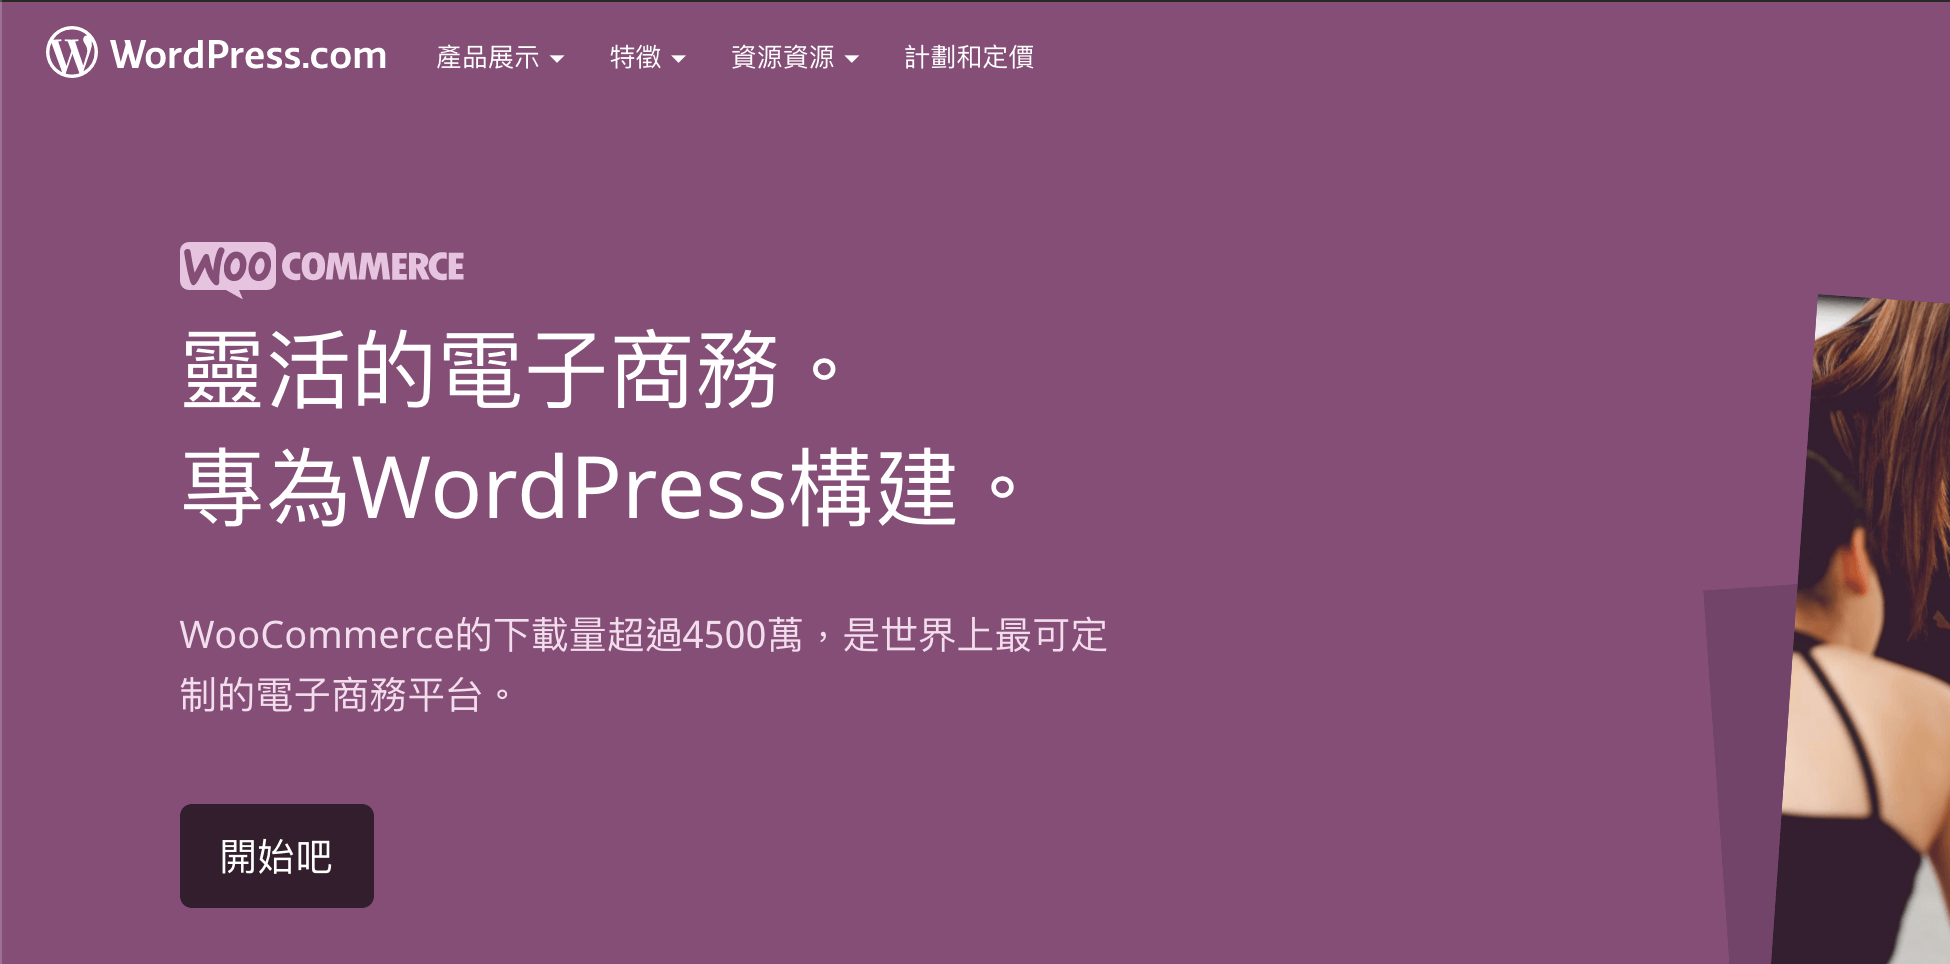 wordpress woocommerce 架設購物網站